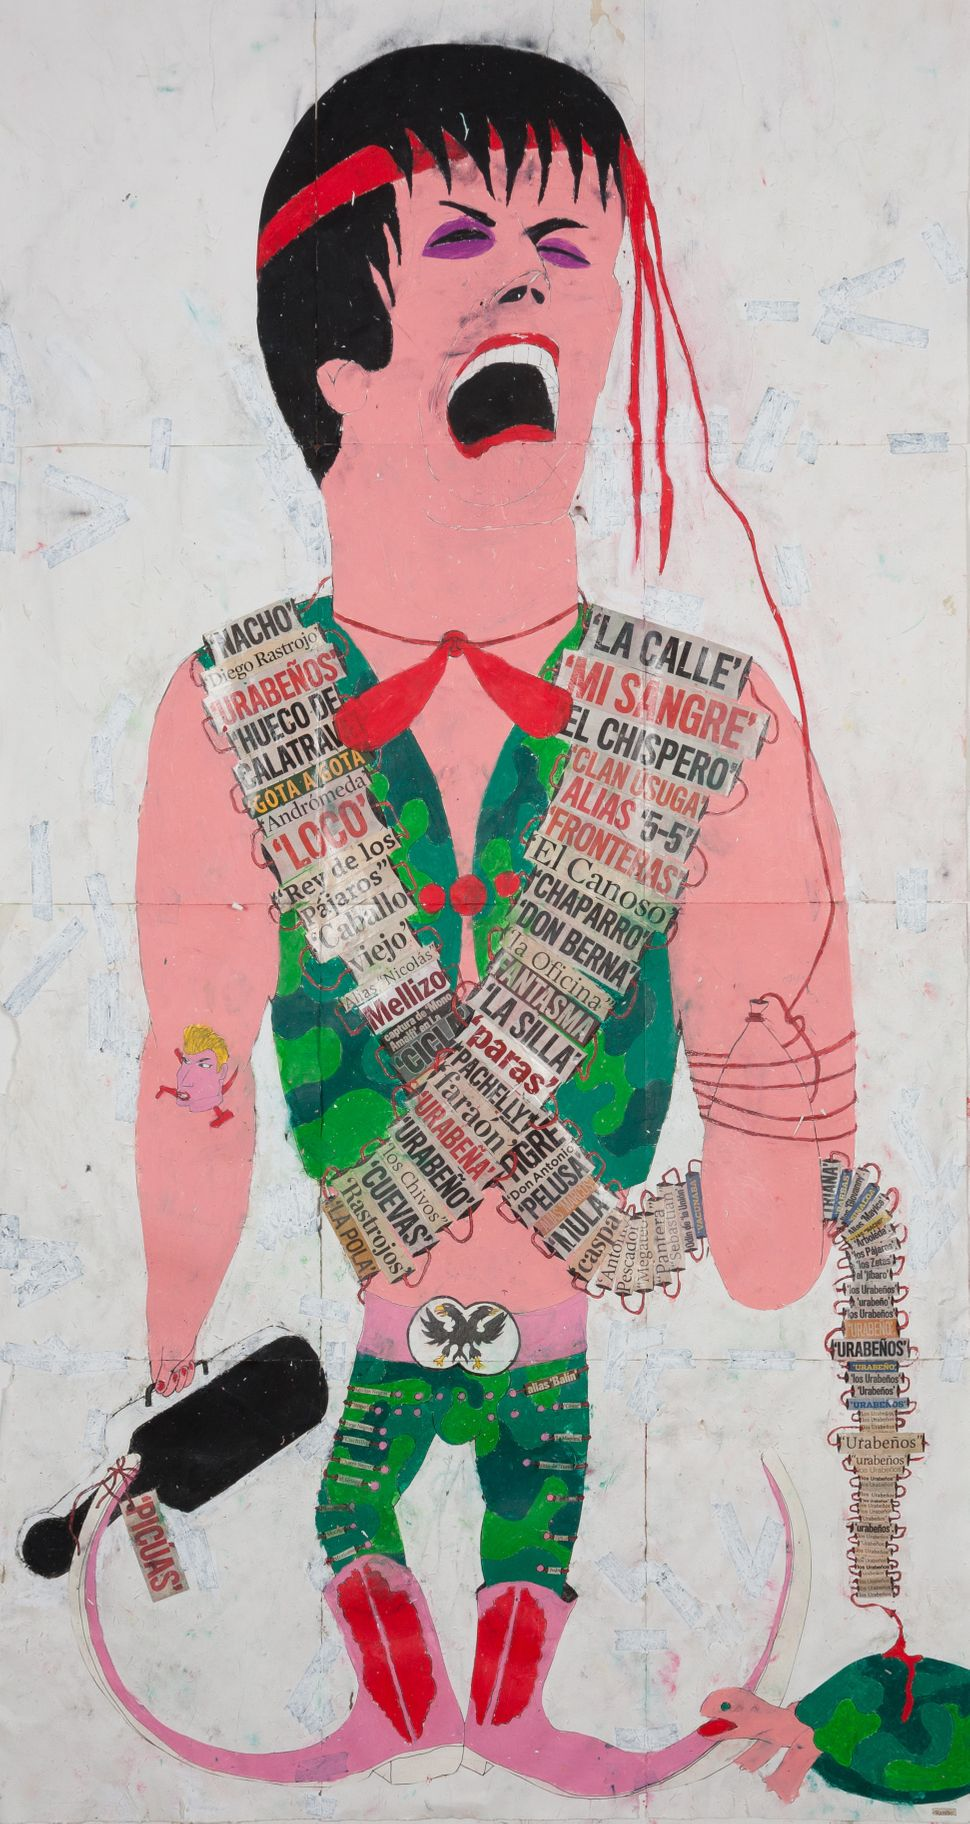 'Rambo', 2014 Ink, water-soluble wax pastel, tape, newspaper clippings and saliva on paper 46 1/2 x 24 3/4 inches (118.1 x 62